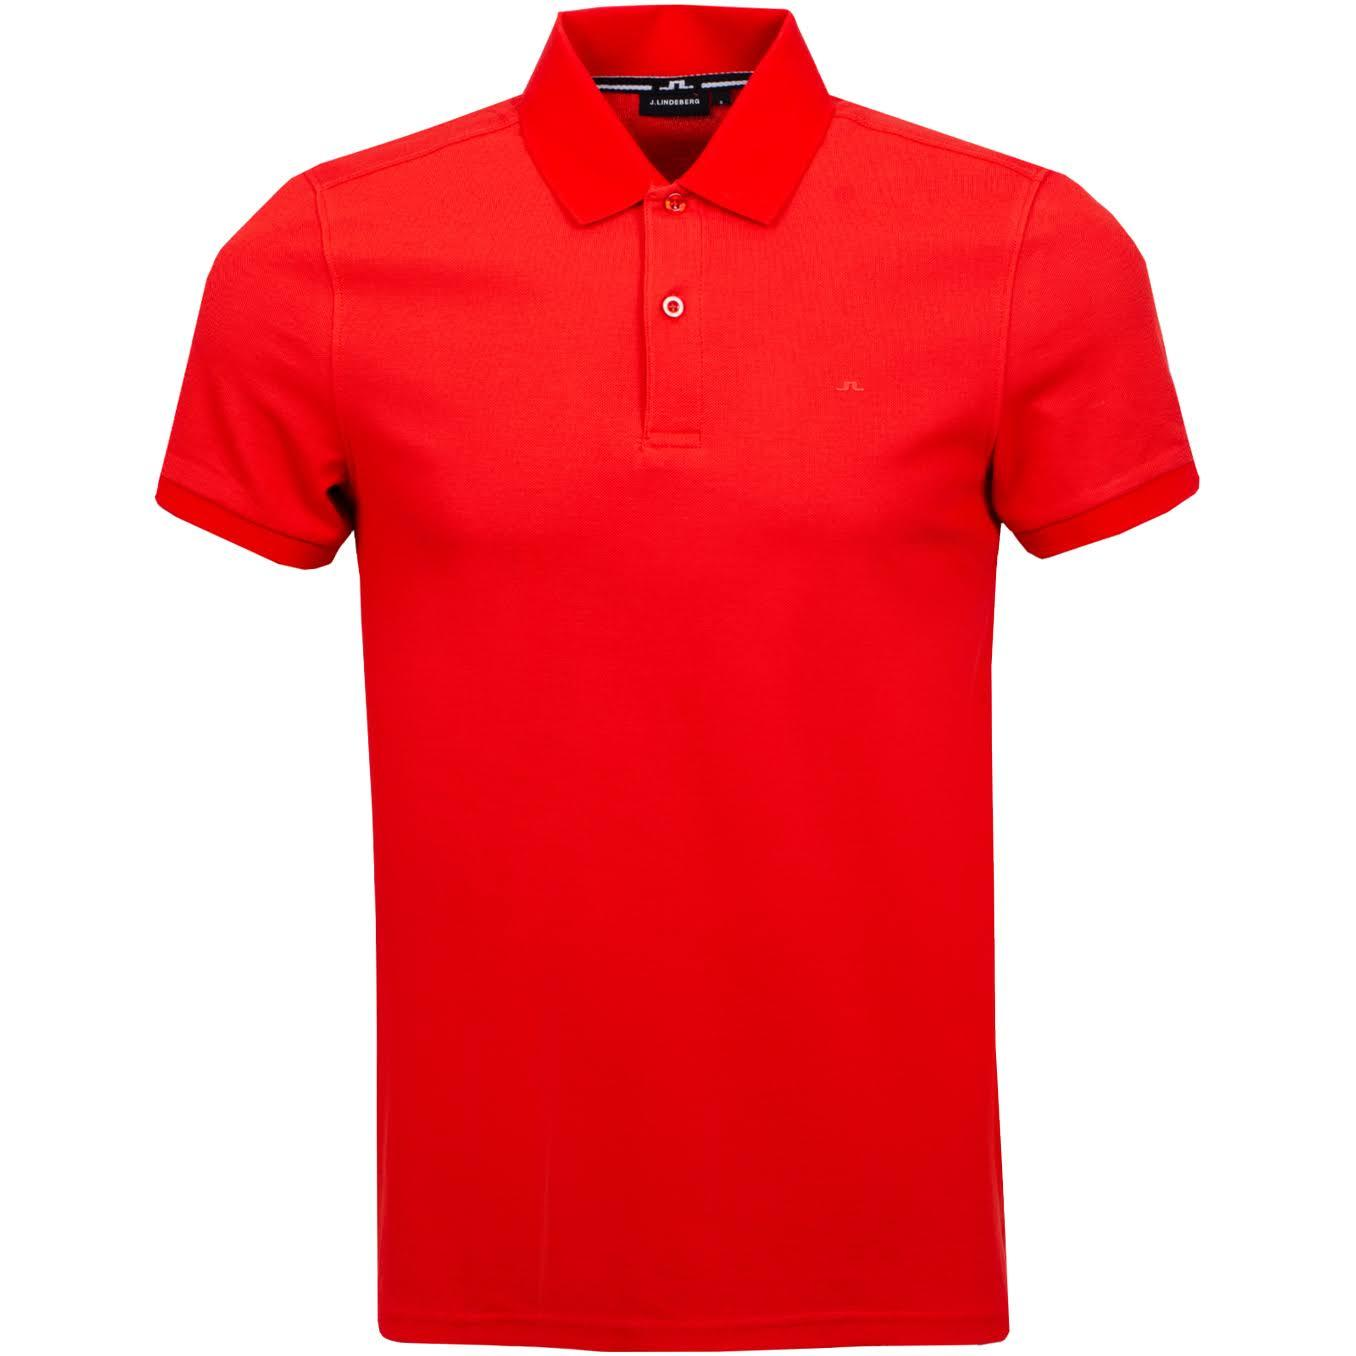 J. Lindeberg Troy Clean Pique Polo Shirt in Deep Red